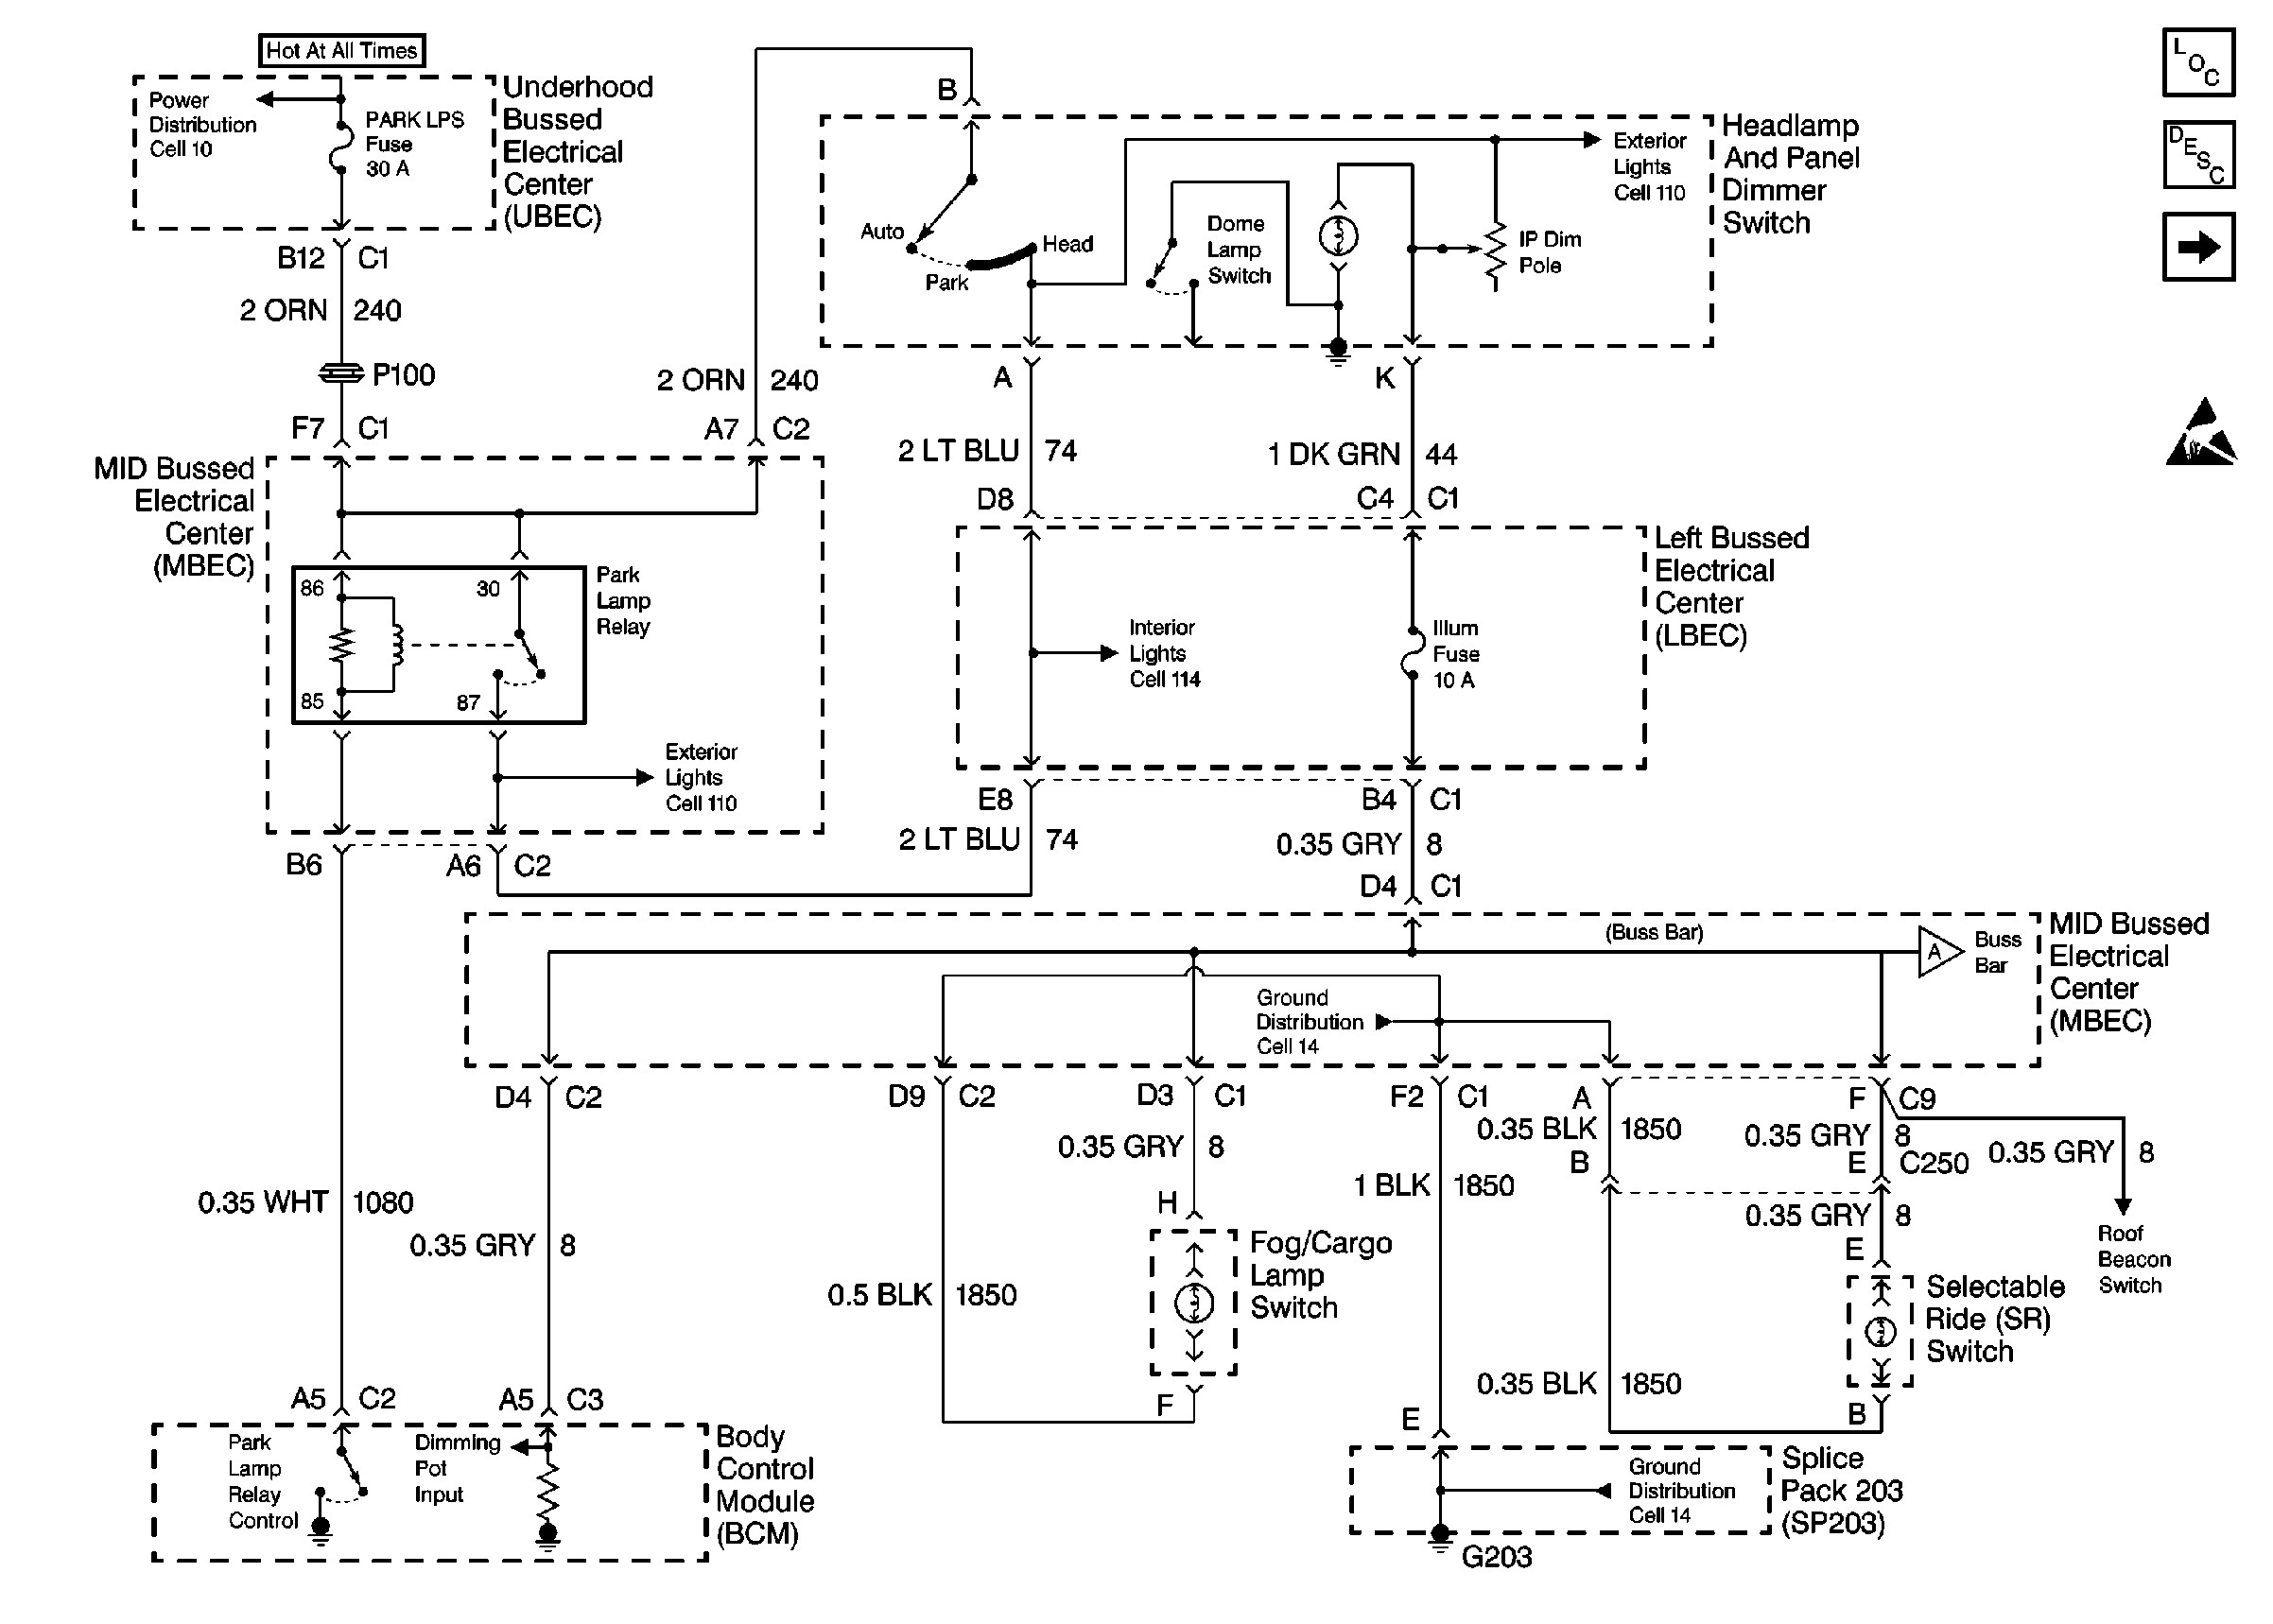 2002 Chevy Tahoe Wiring Diagram - 1941 Chevy Wiring Harness for Wiring  Diagram SchematicsWiring Diagram Schematics